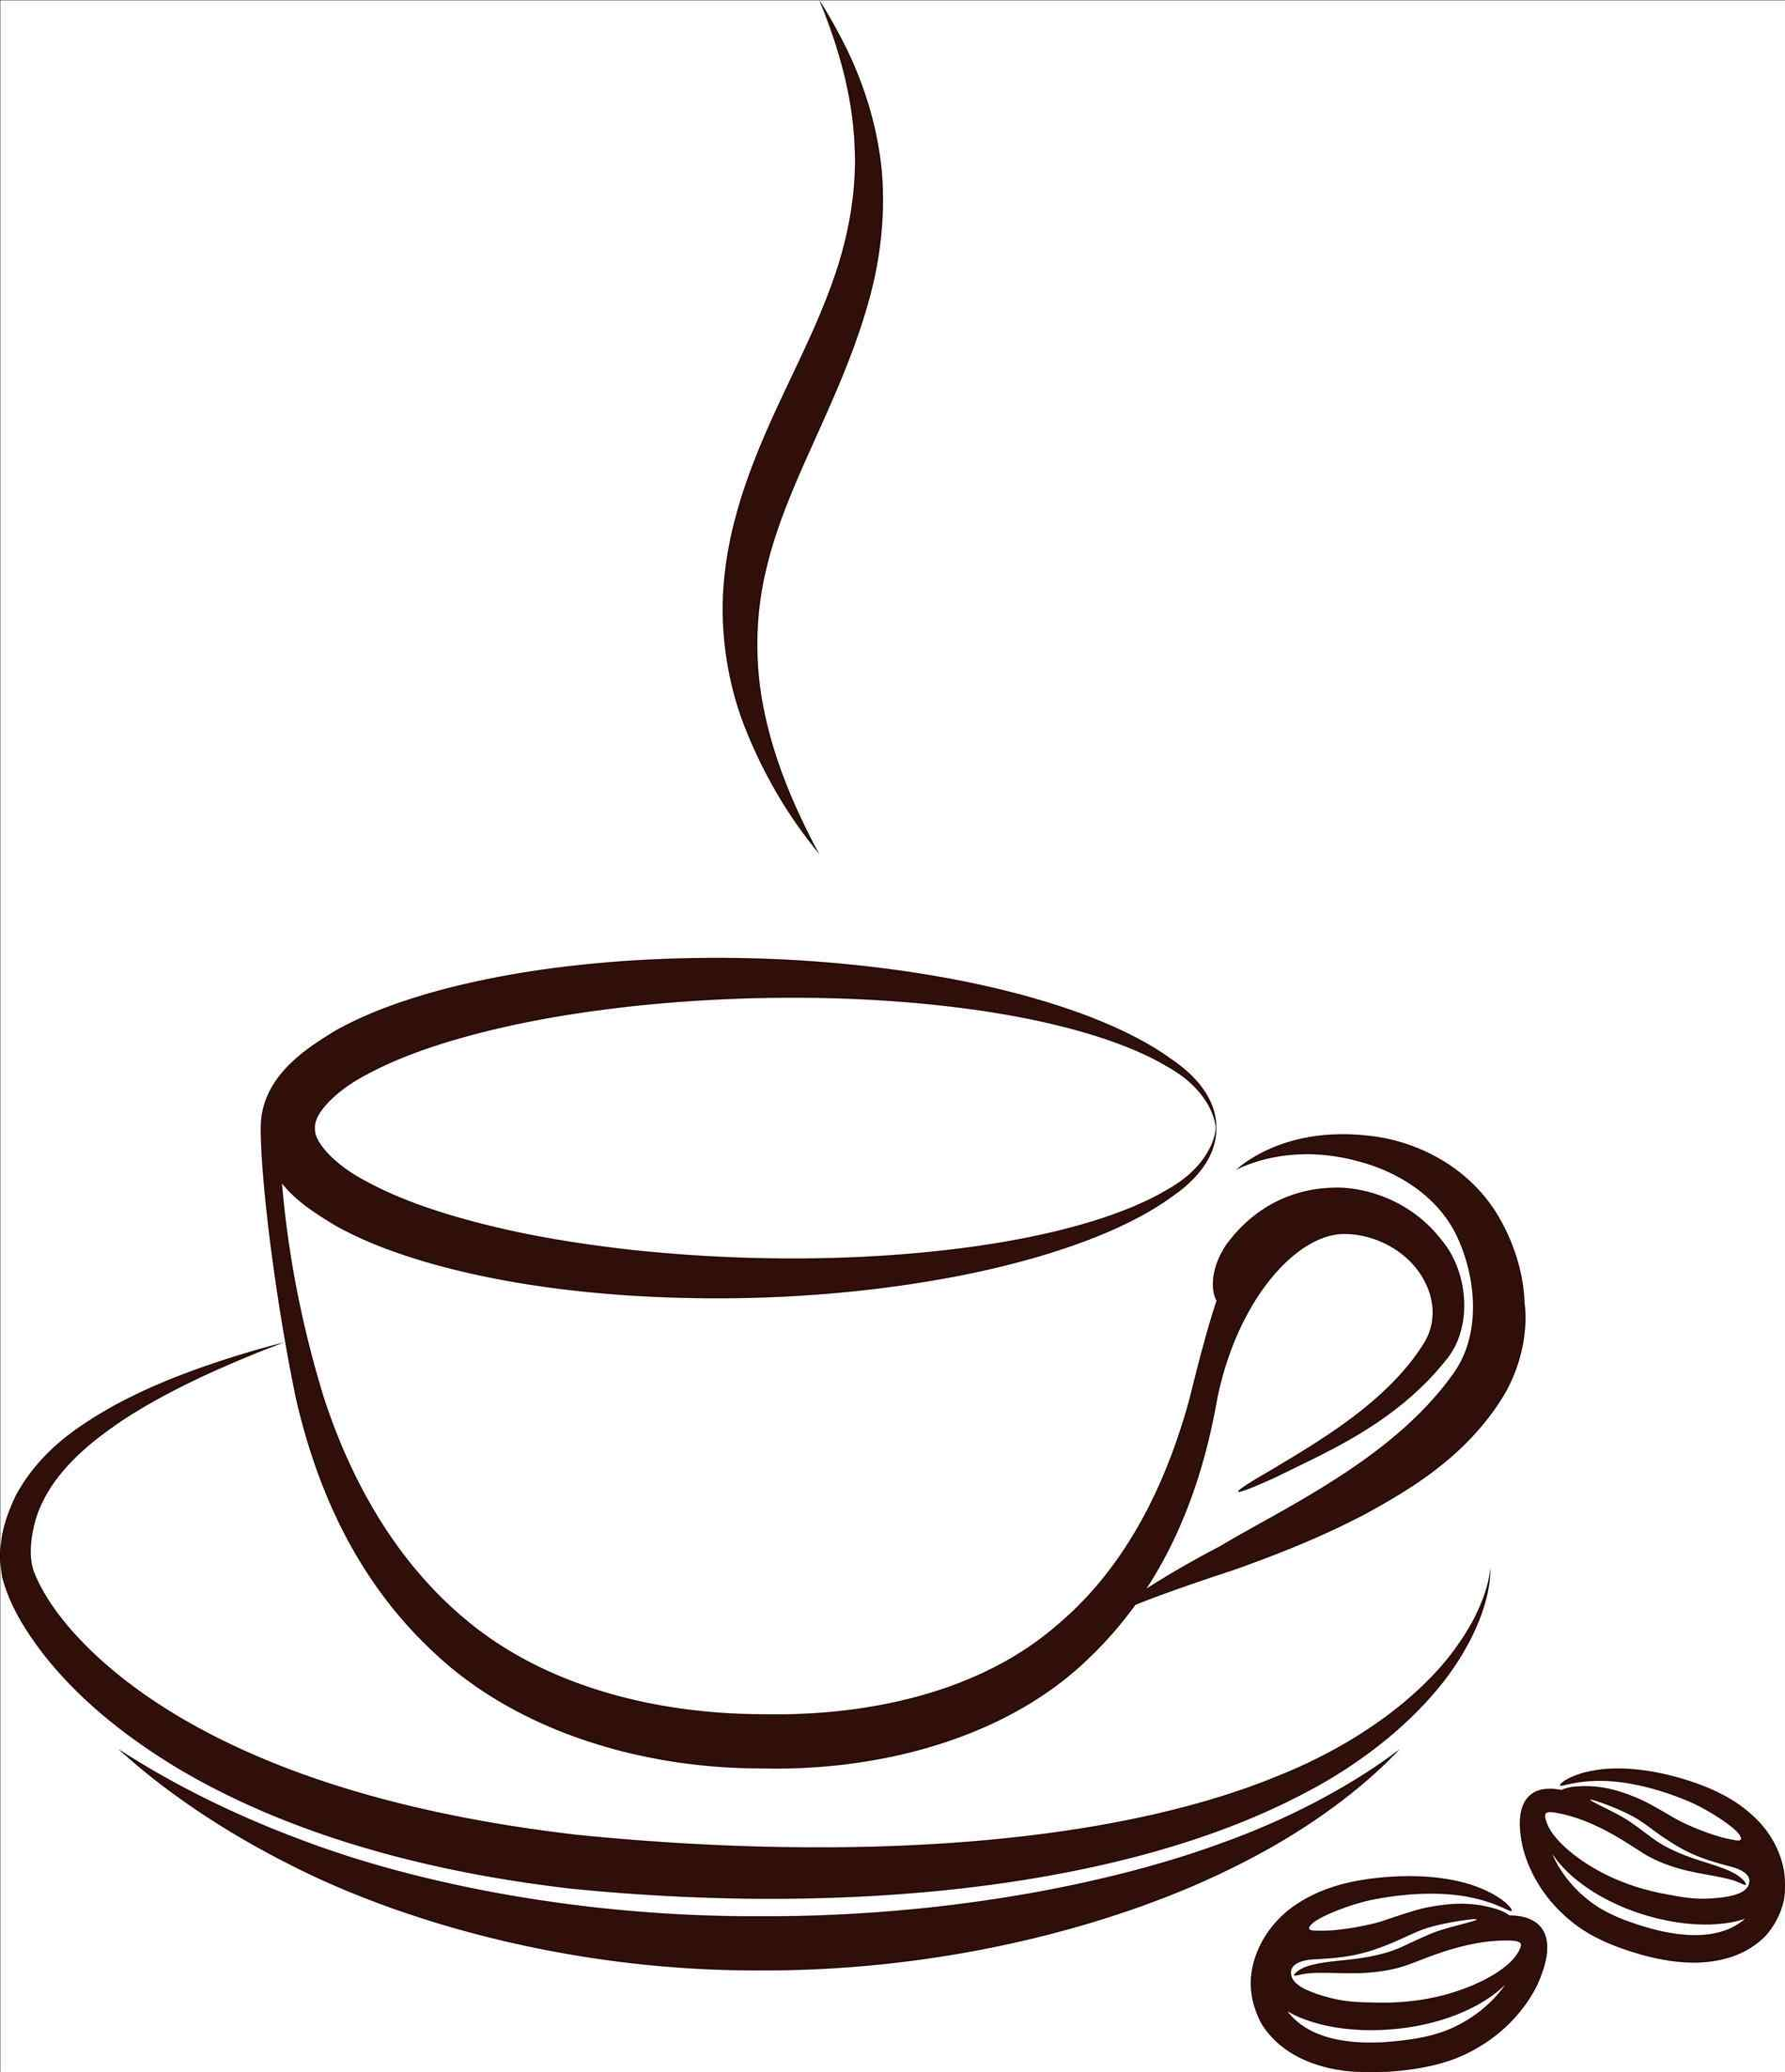 482 Coffee Mug free clipart.